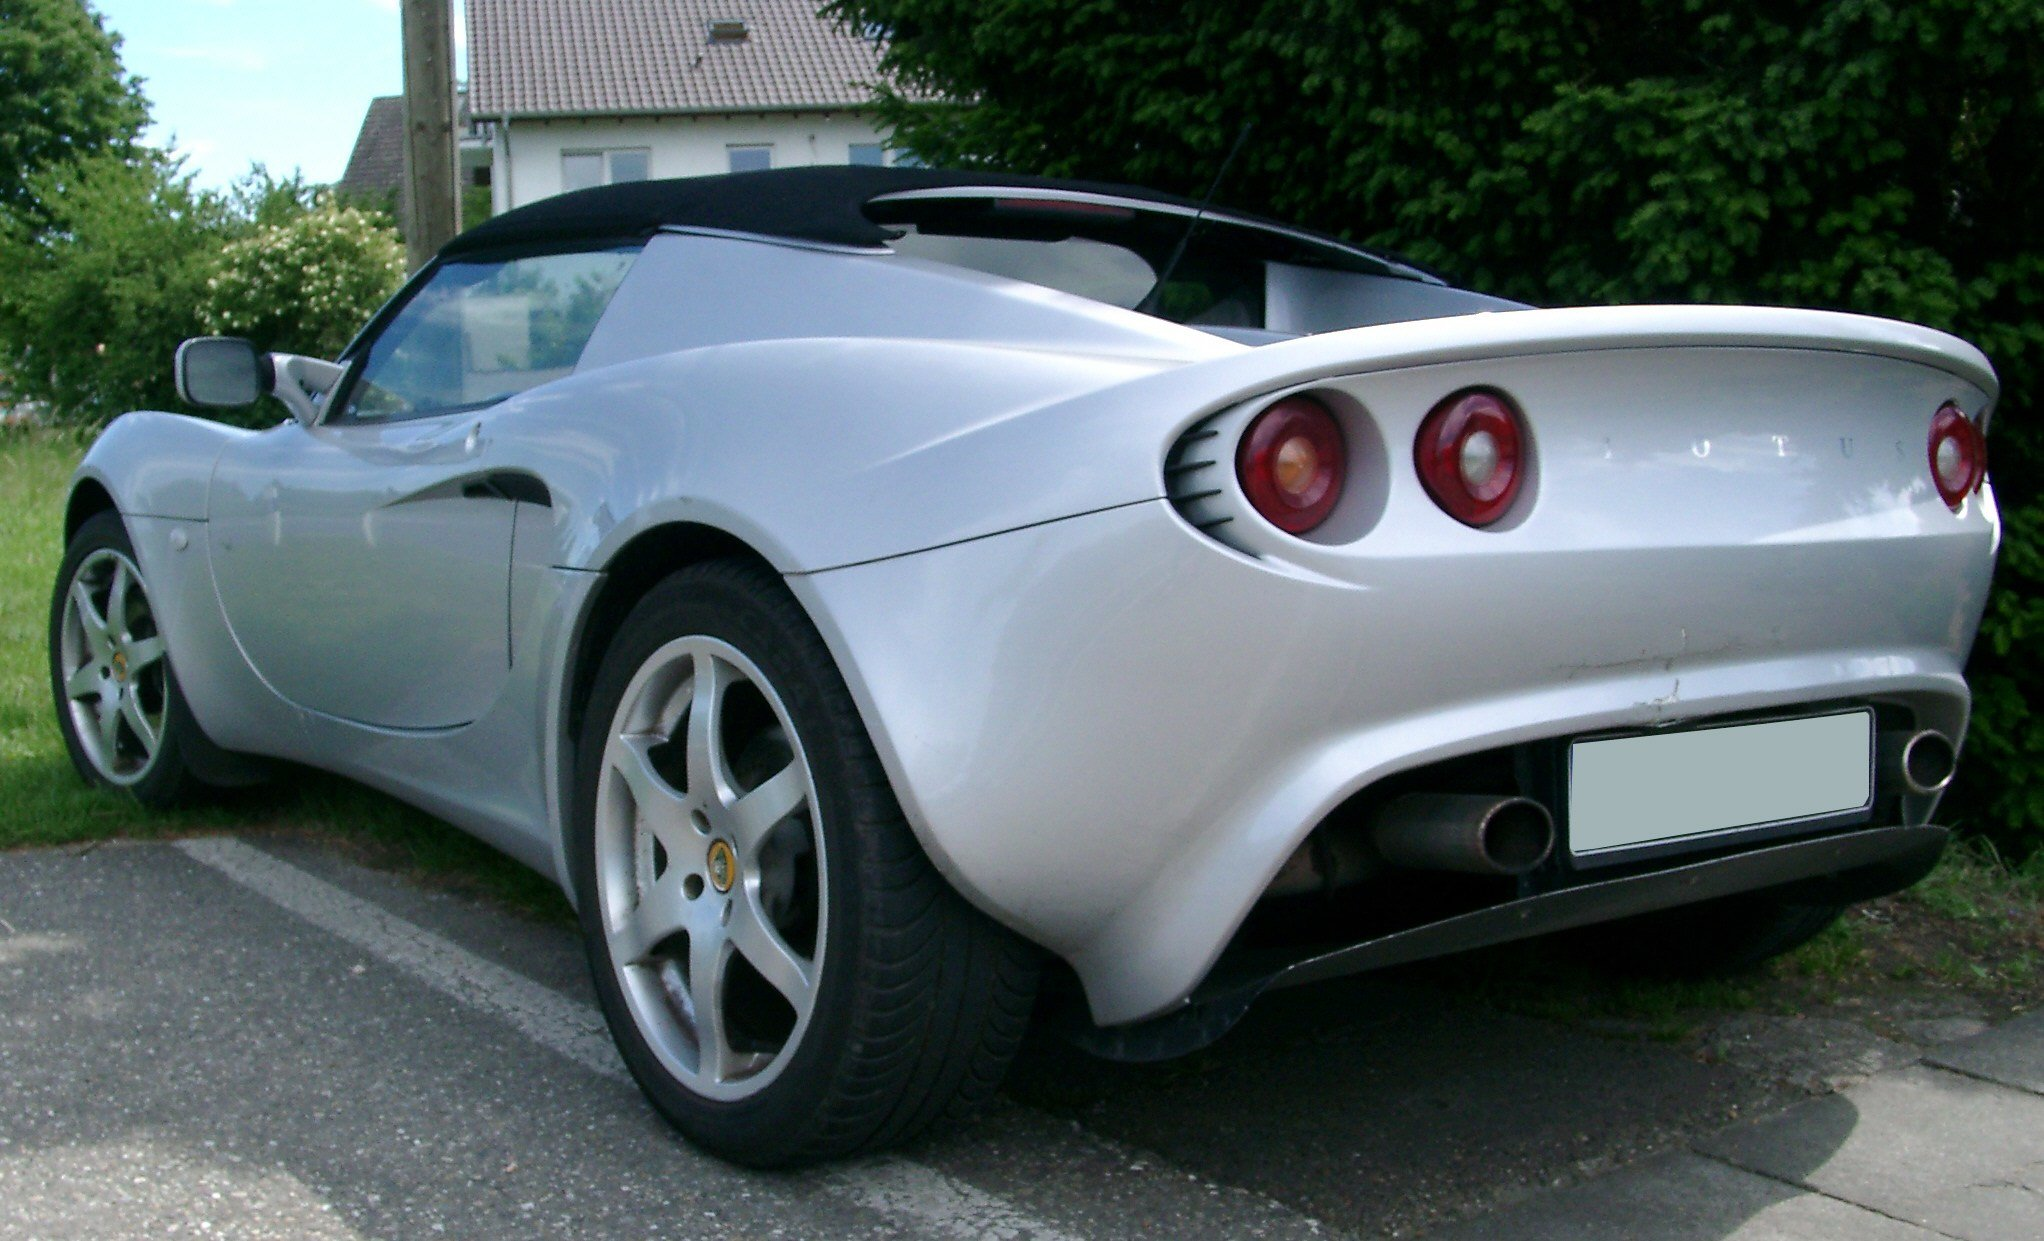 Latest Oval Tipped Euro Exhaust Lotustalk The Lotus Cars Free Download